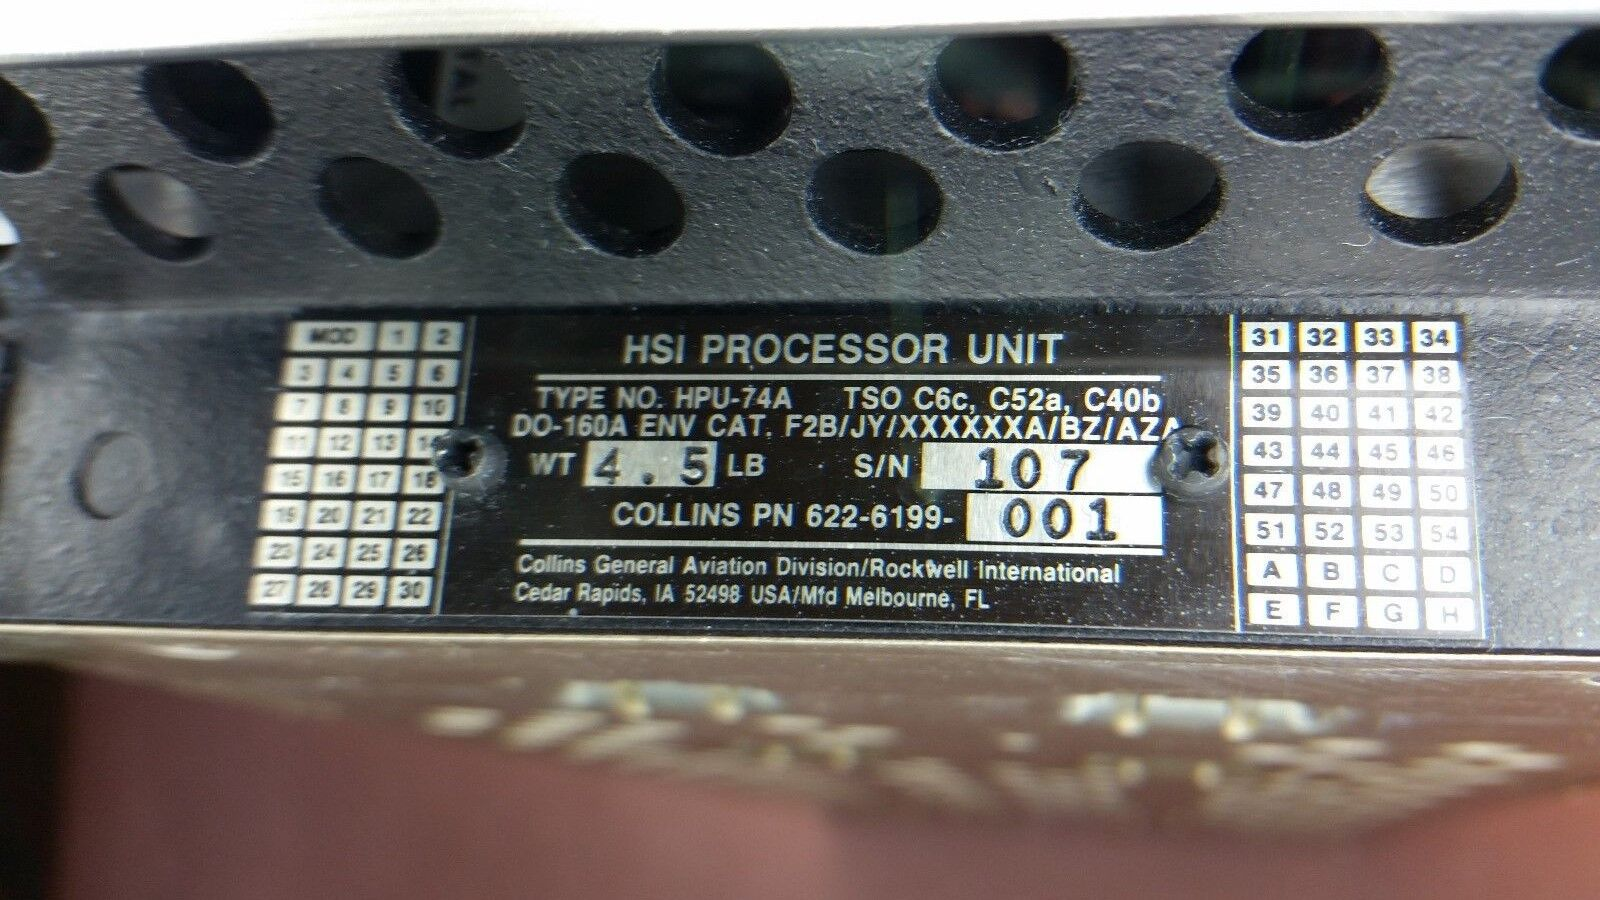 HPU-74A COLLINS HSI PROCESSOR UNIT P/N: 622-6199-001 (AR)